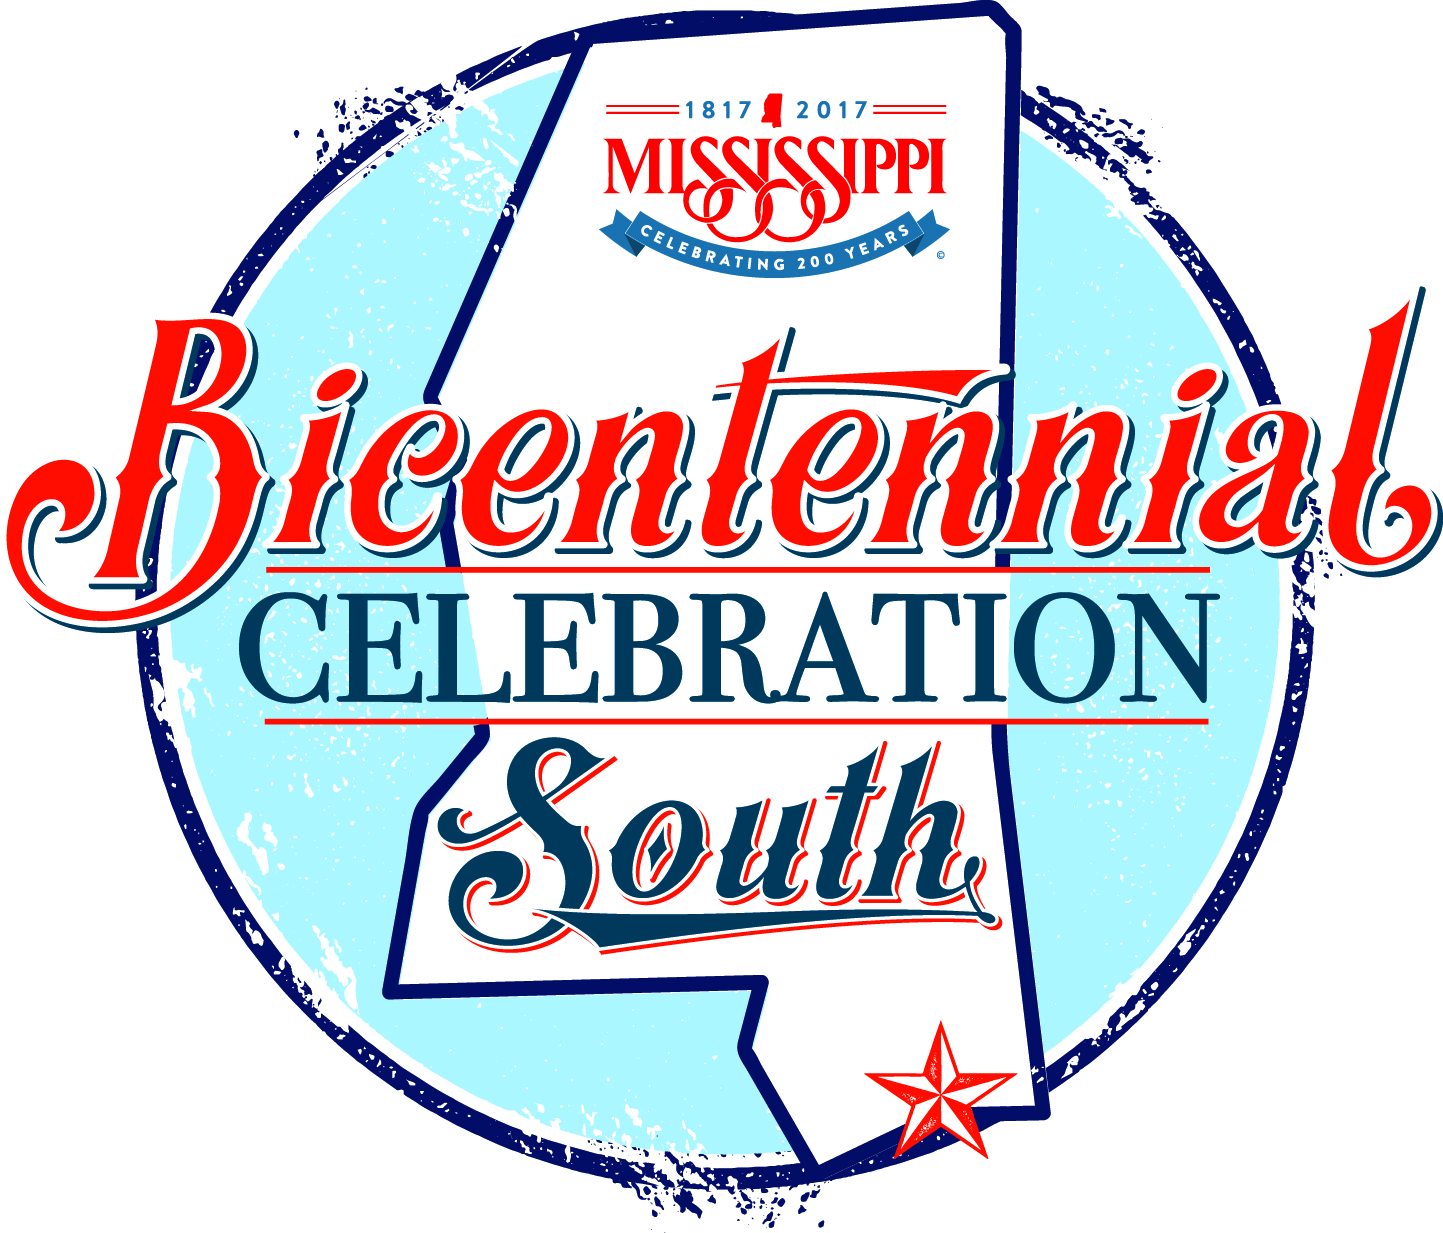 Mississippi Bicentennial Celebration